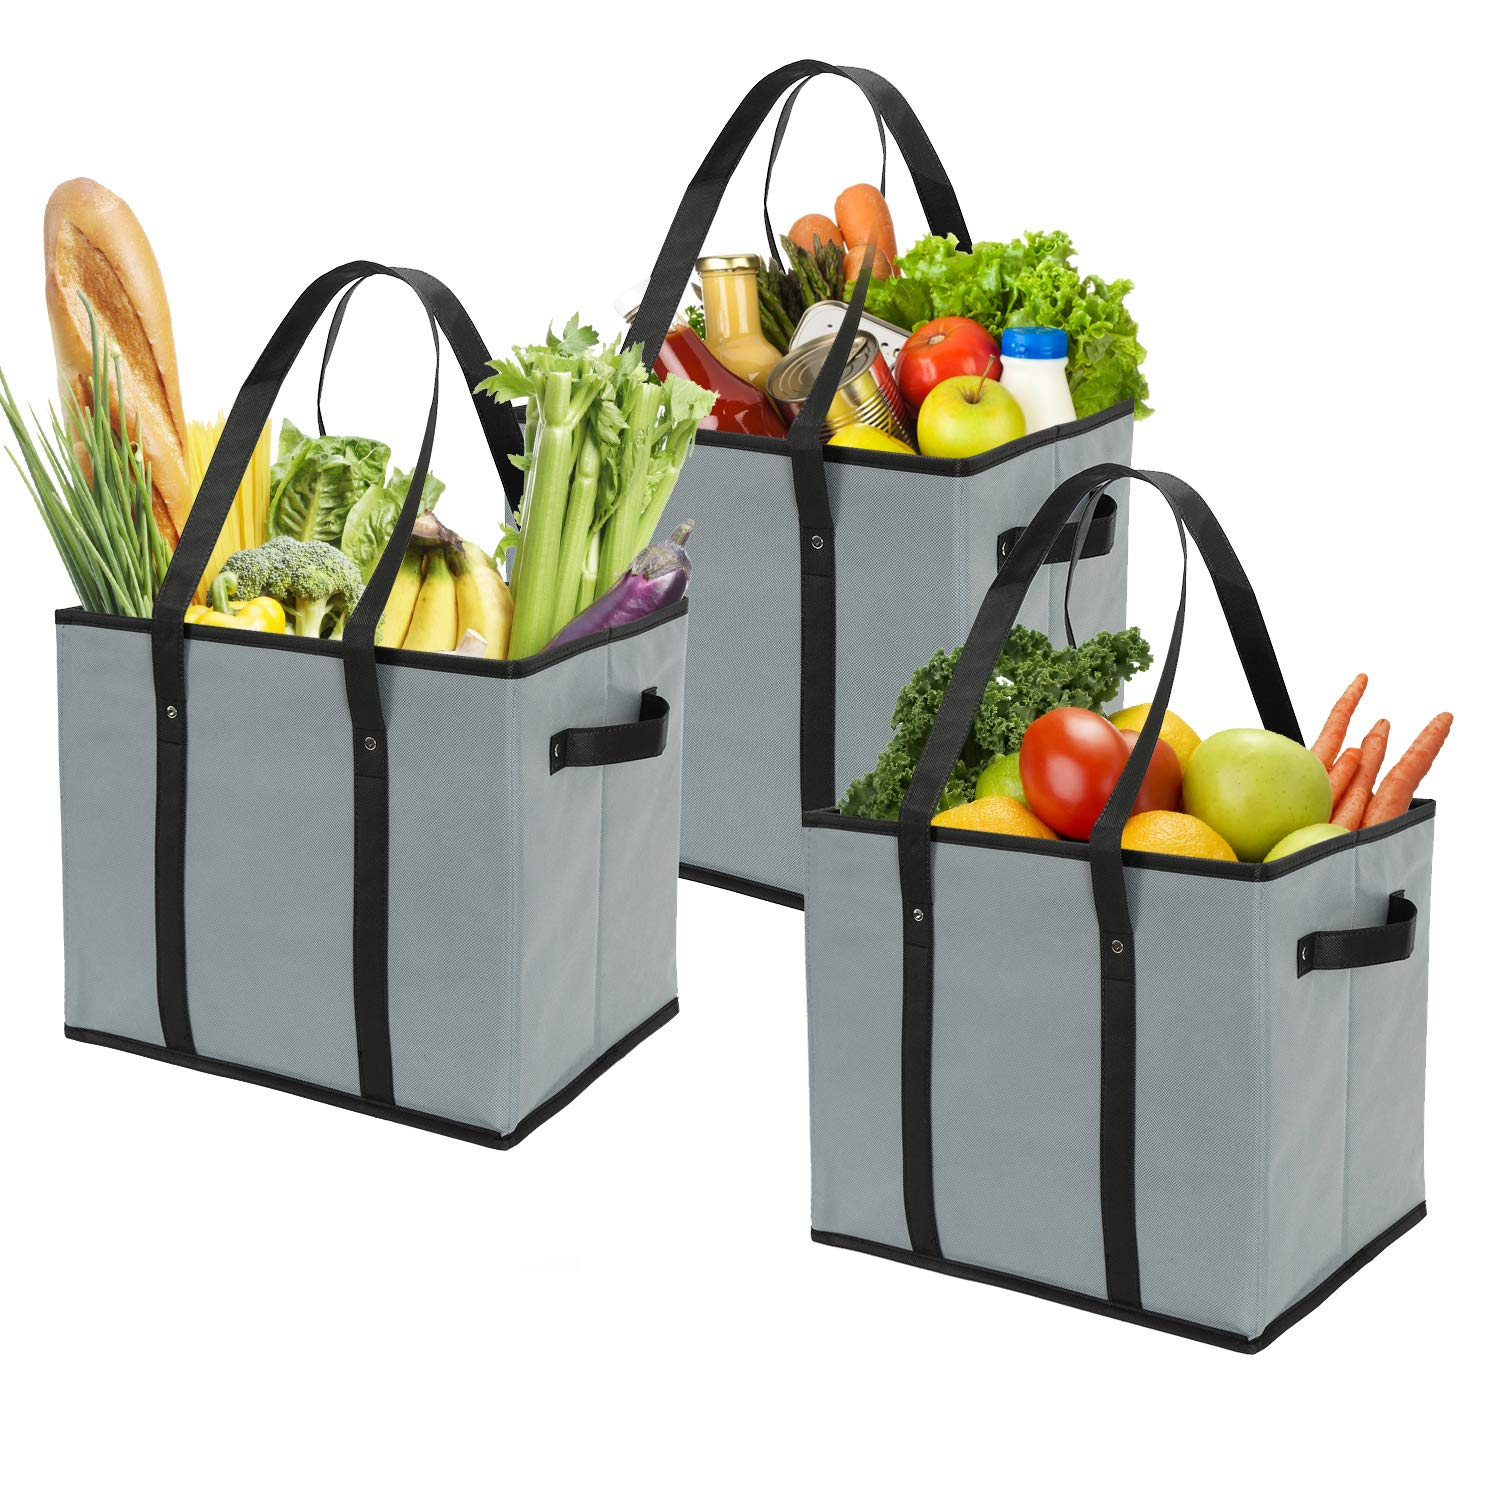 Foraineam Reusable Collapsible Shopping Reinforced